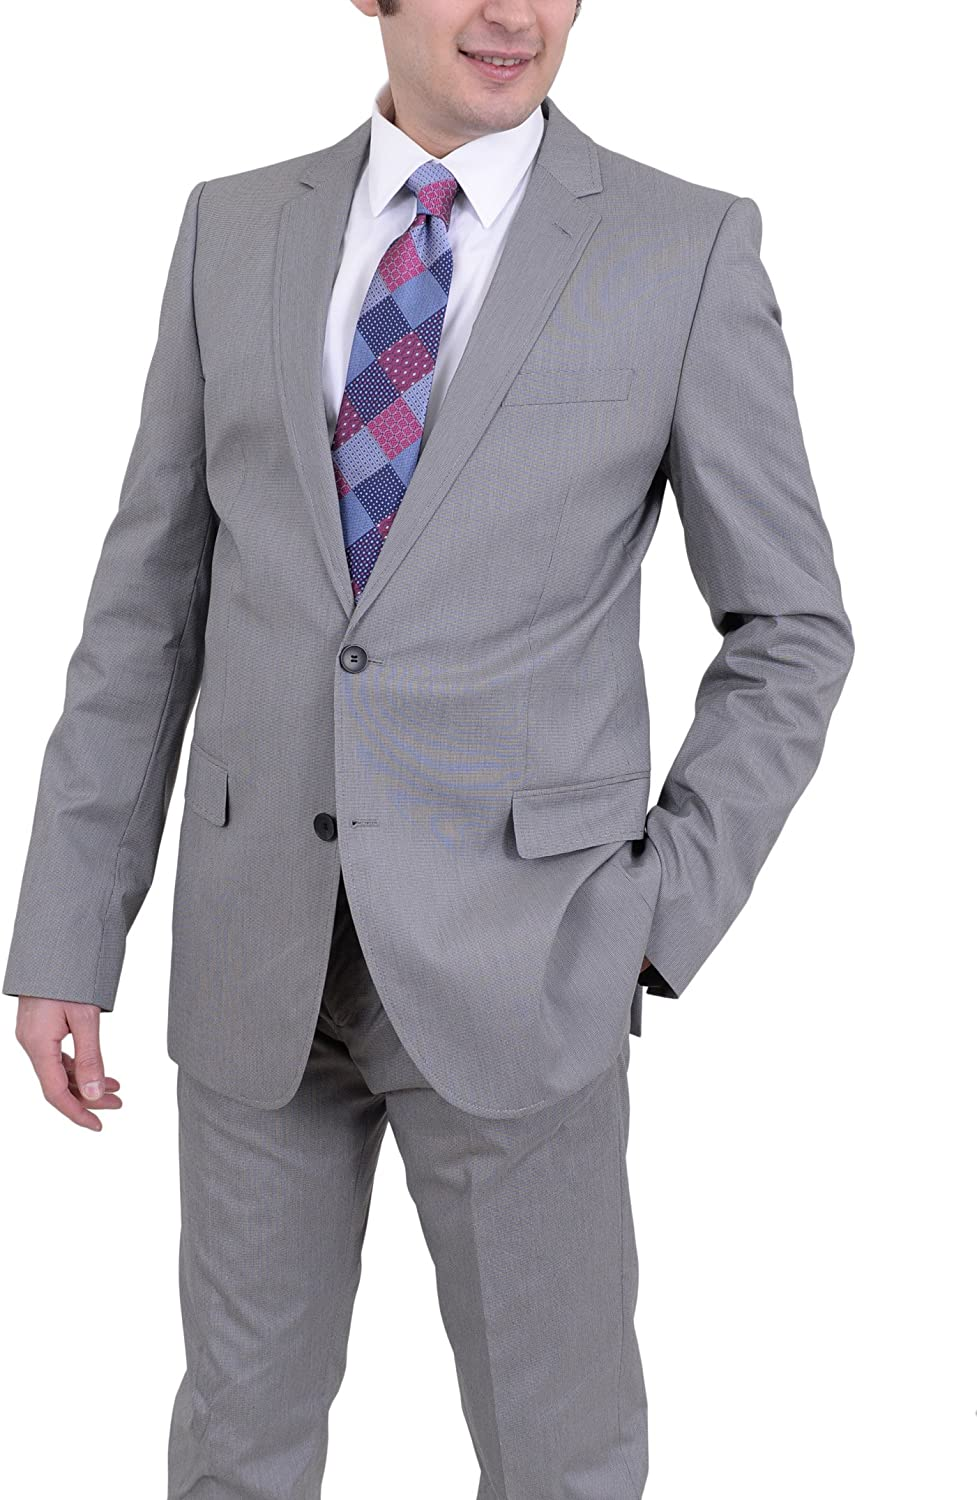 Hugo Boss Aiko1/heise Slim Fit Gray Mini Check Two Button Stretch Suit